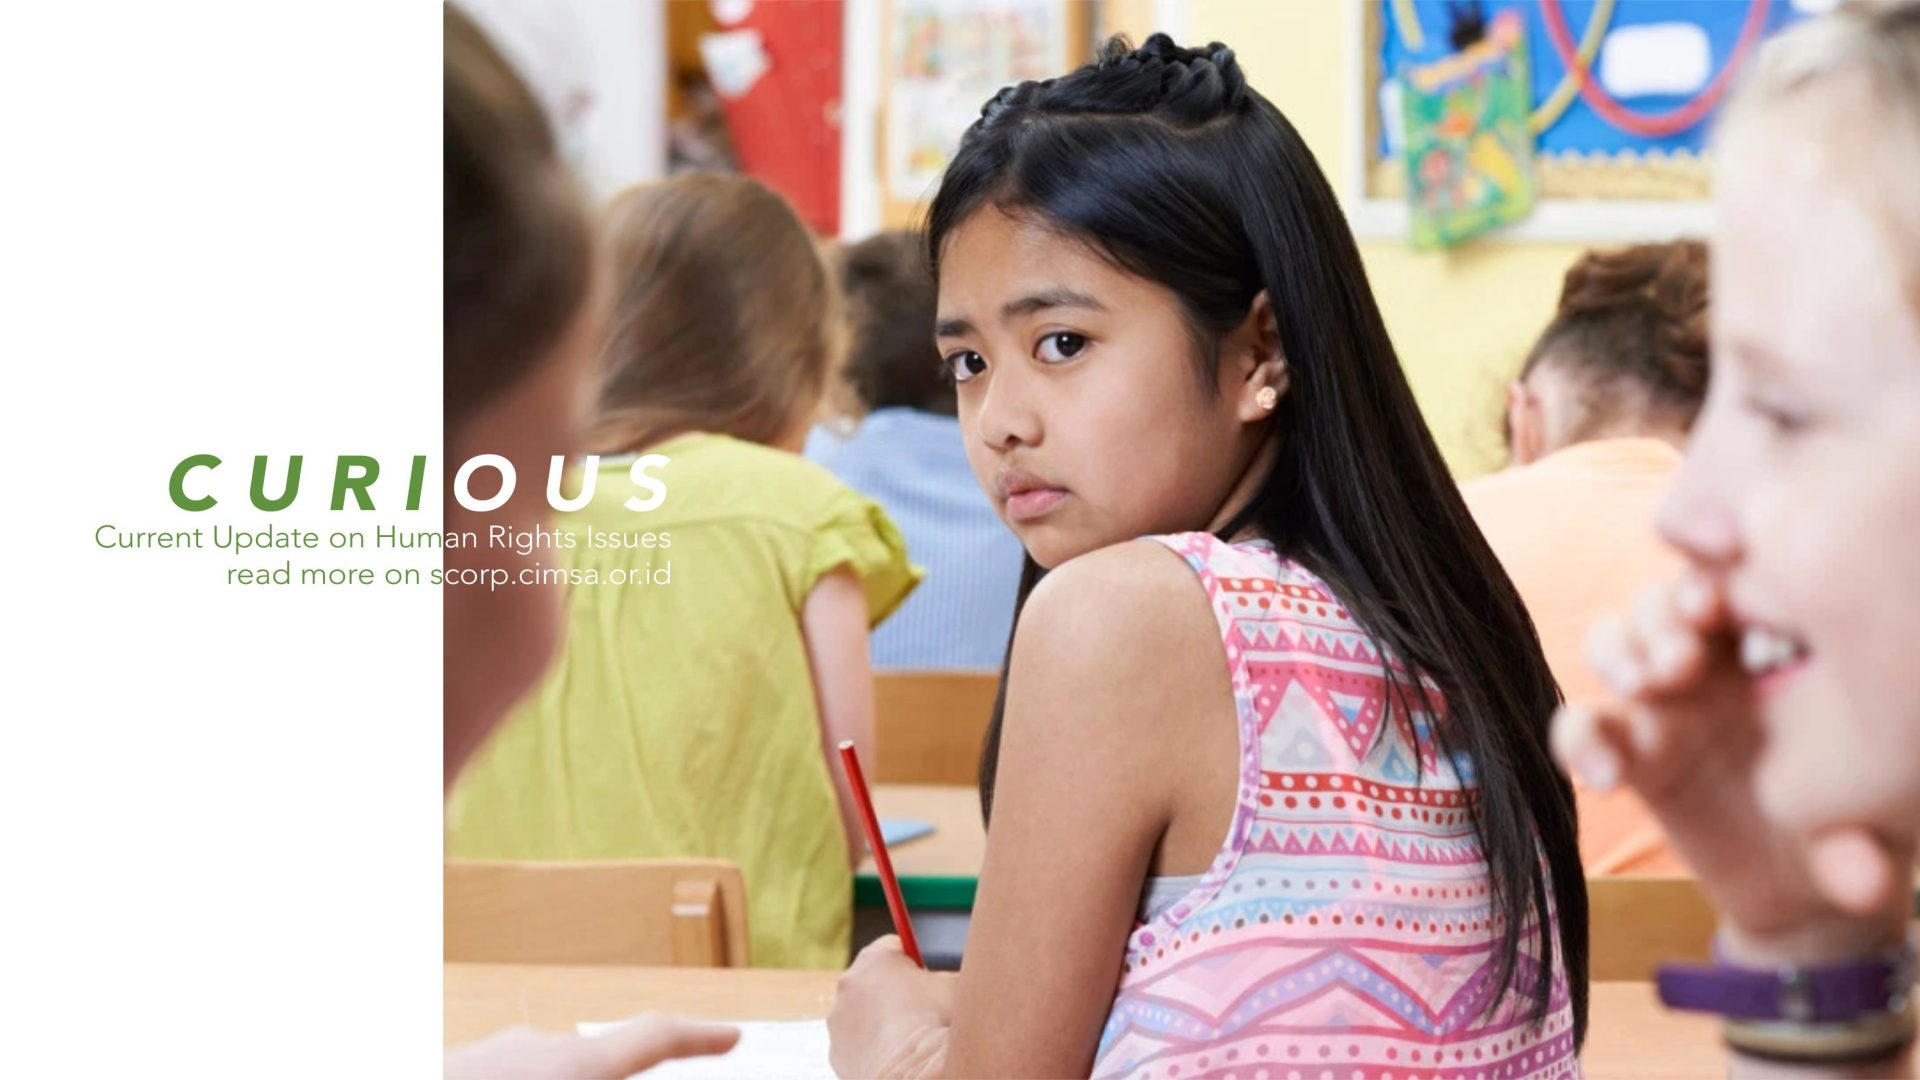 CURIOUS – Stand Up Against Bullying